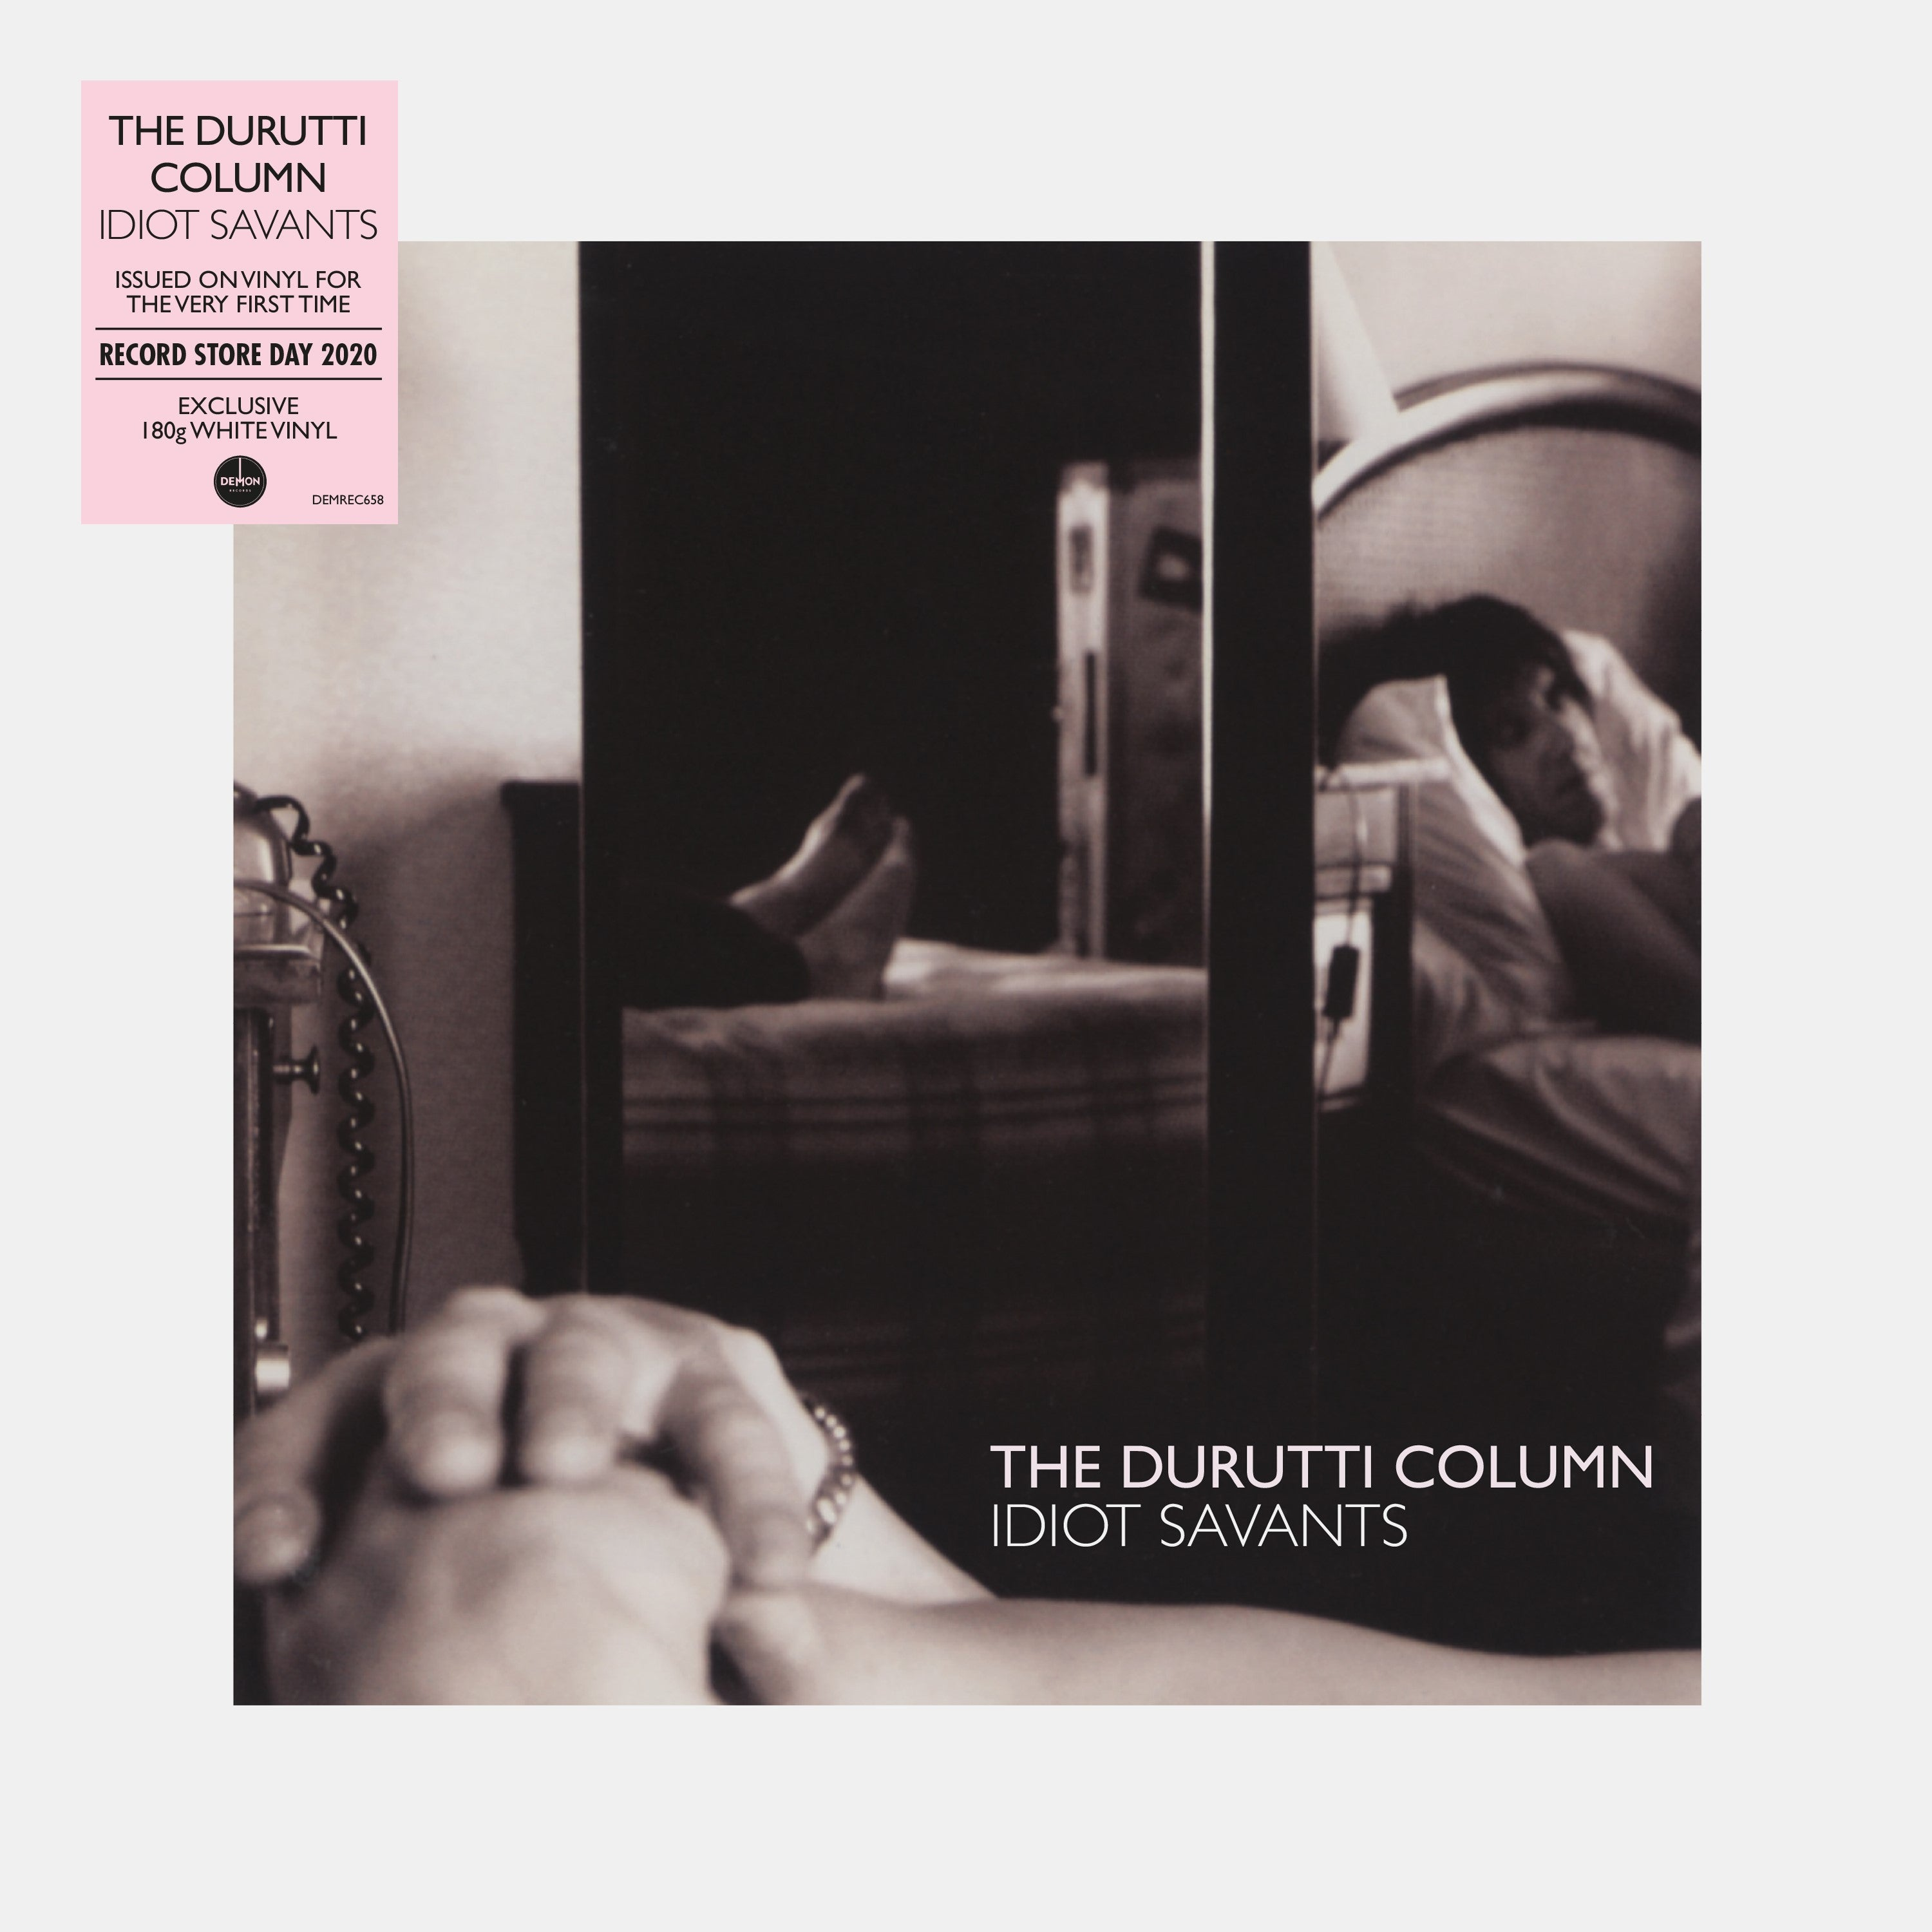 The Durutti Column - Idiot Savants (RSD 2020 Drop Two) White Colour Vinyl Record Album